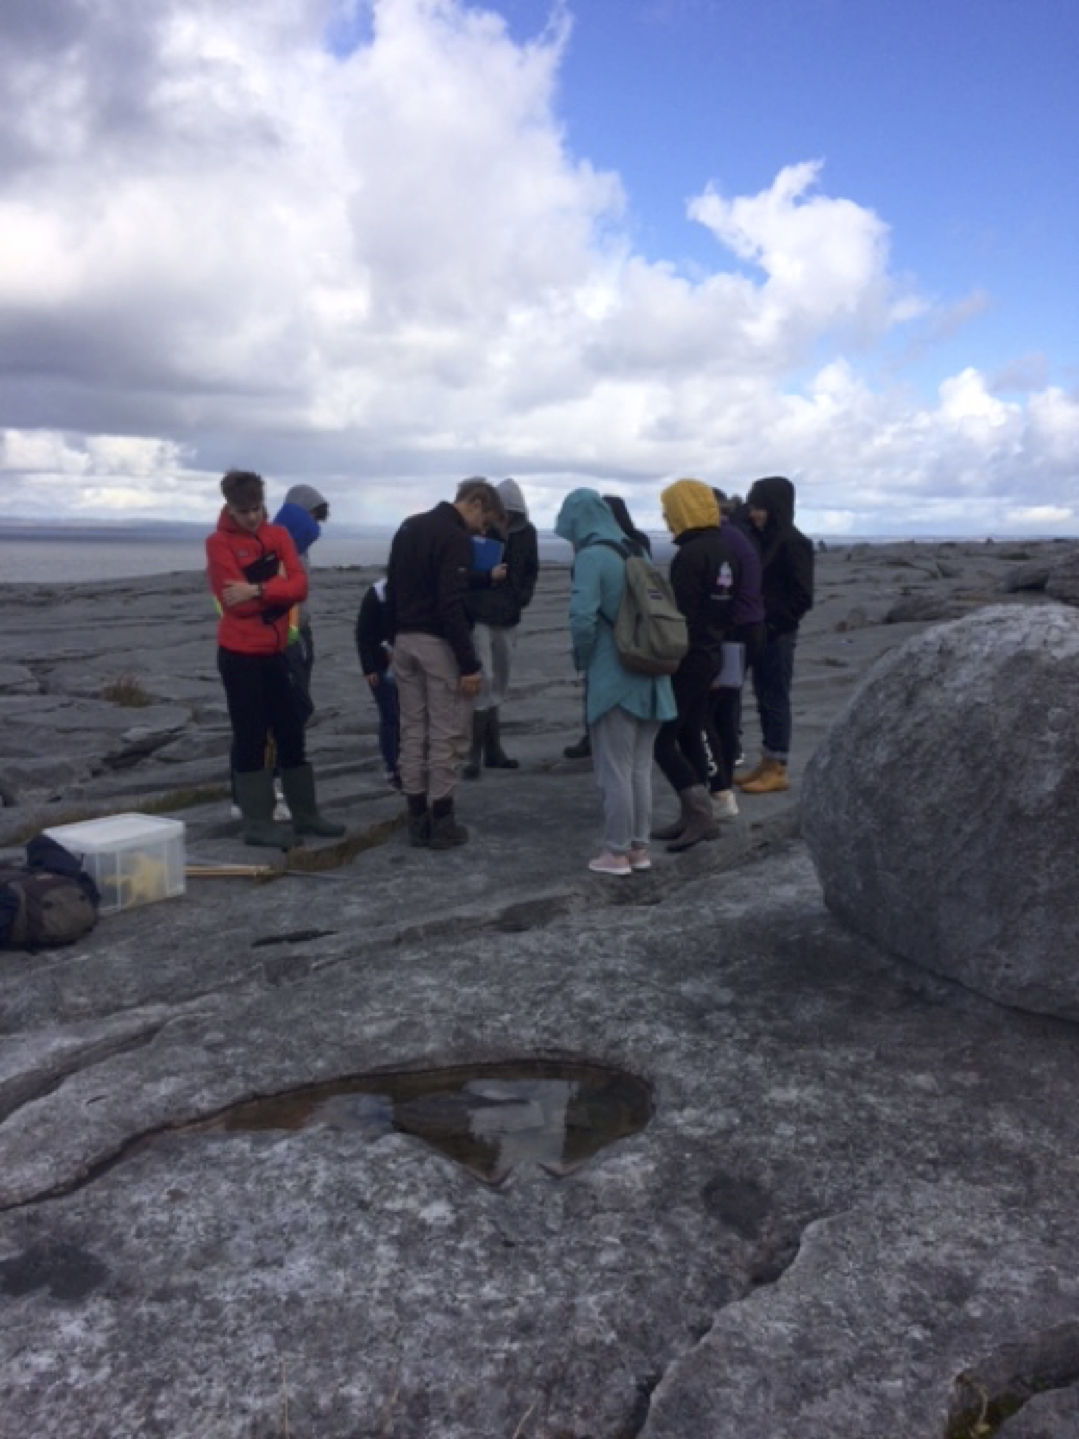 Sept 2017: Desmond College Leaving Certificate Geography students analysing the bedrock in the Burren